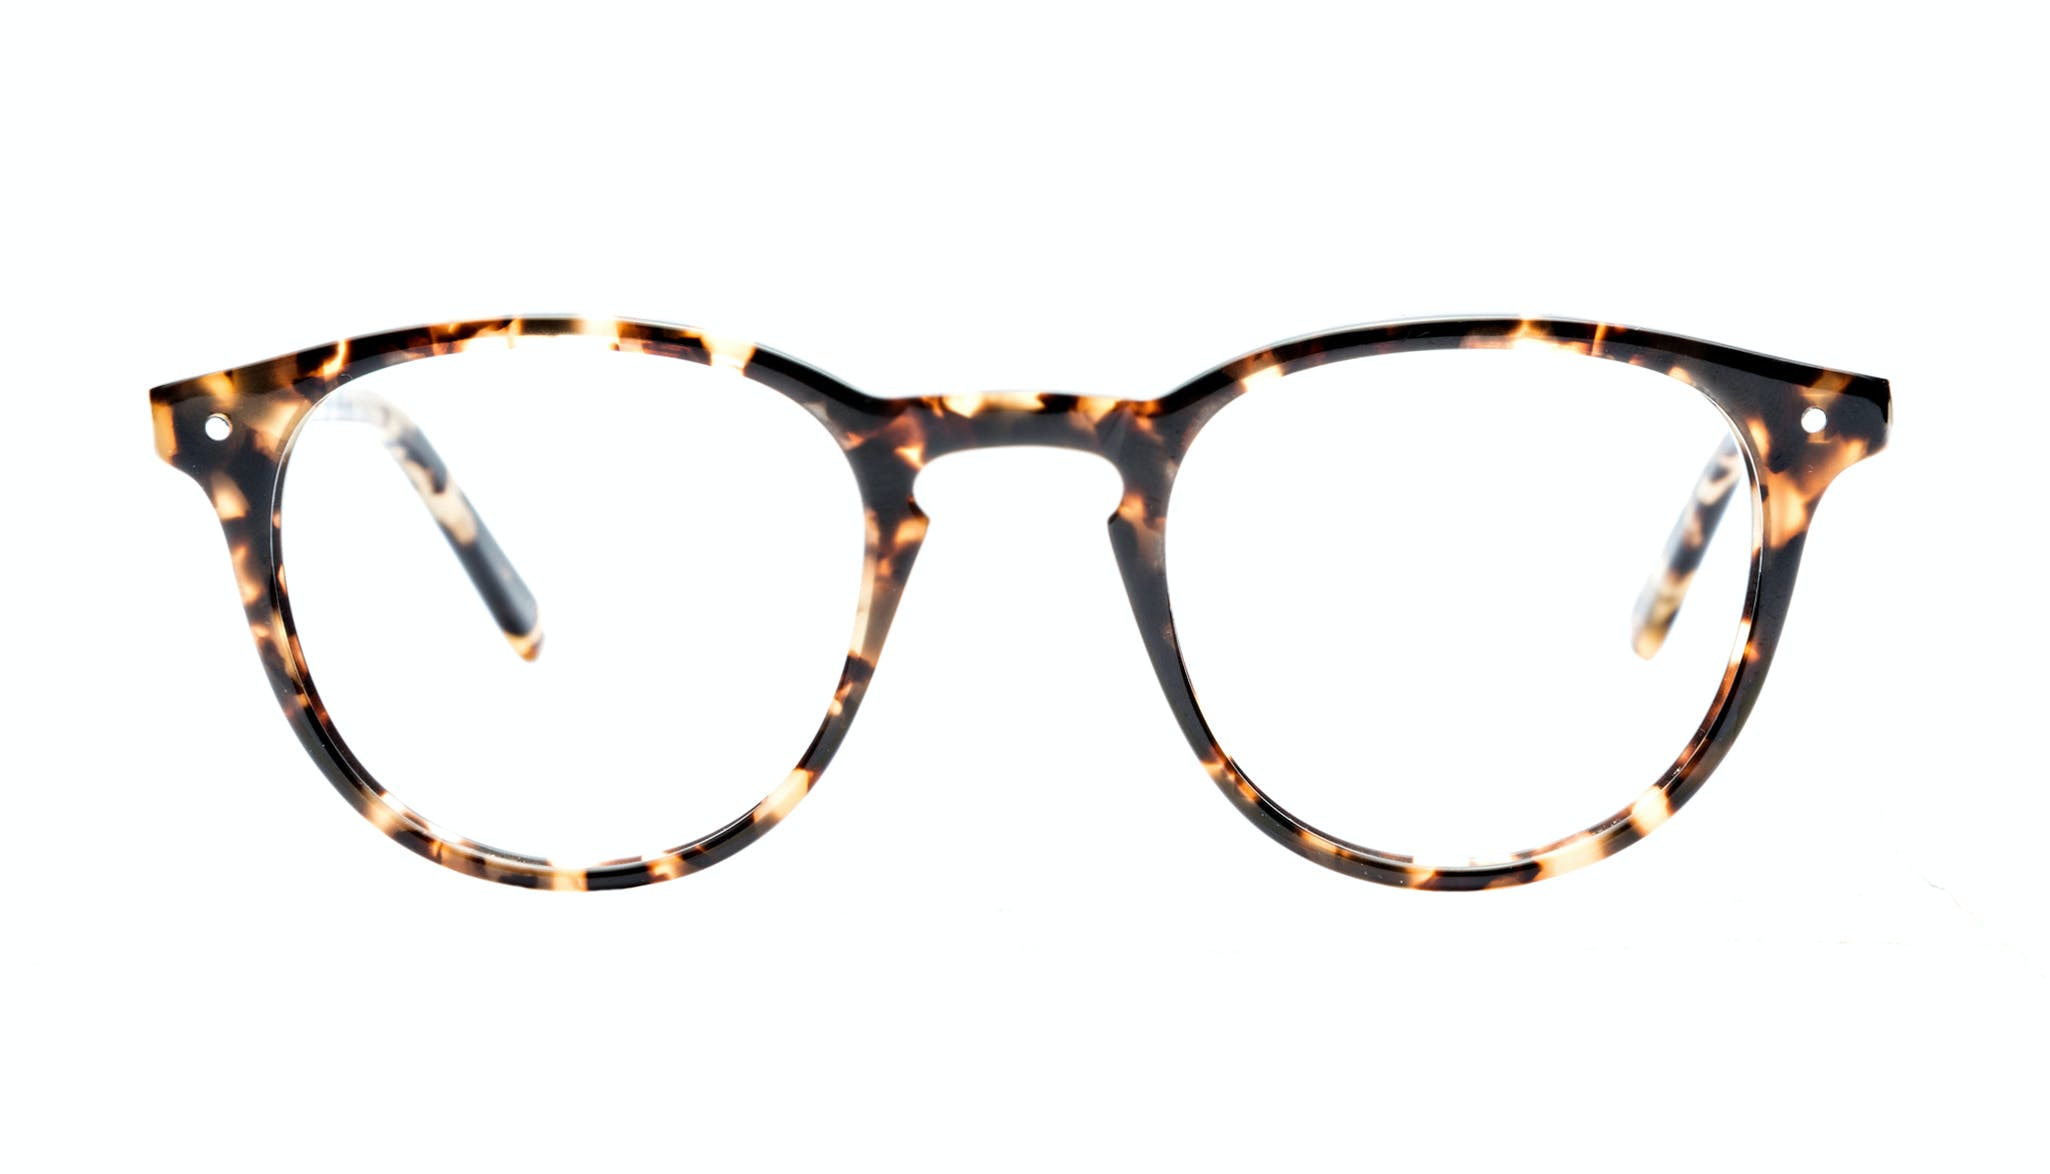 Affordable Fashion Glasses Round Eyeglasses Men Cult Dark Tortoise